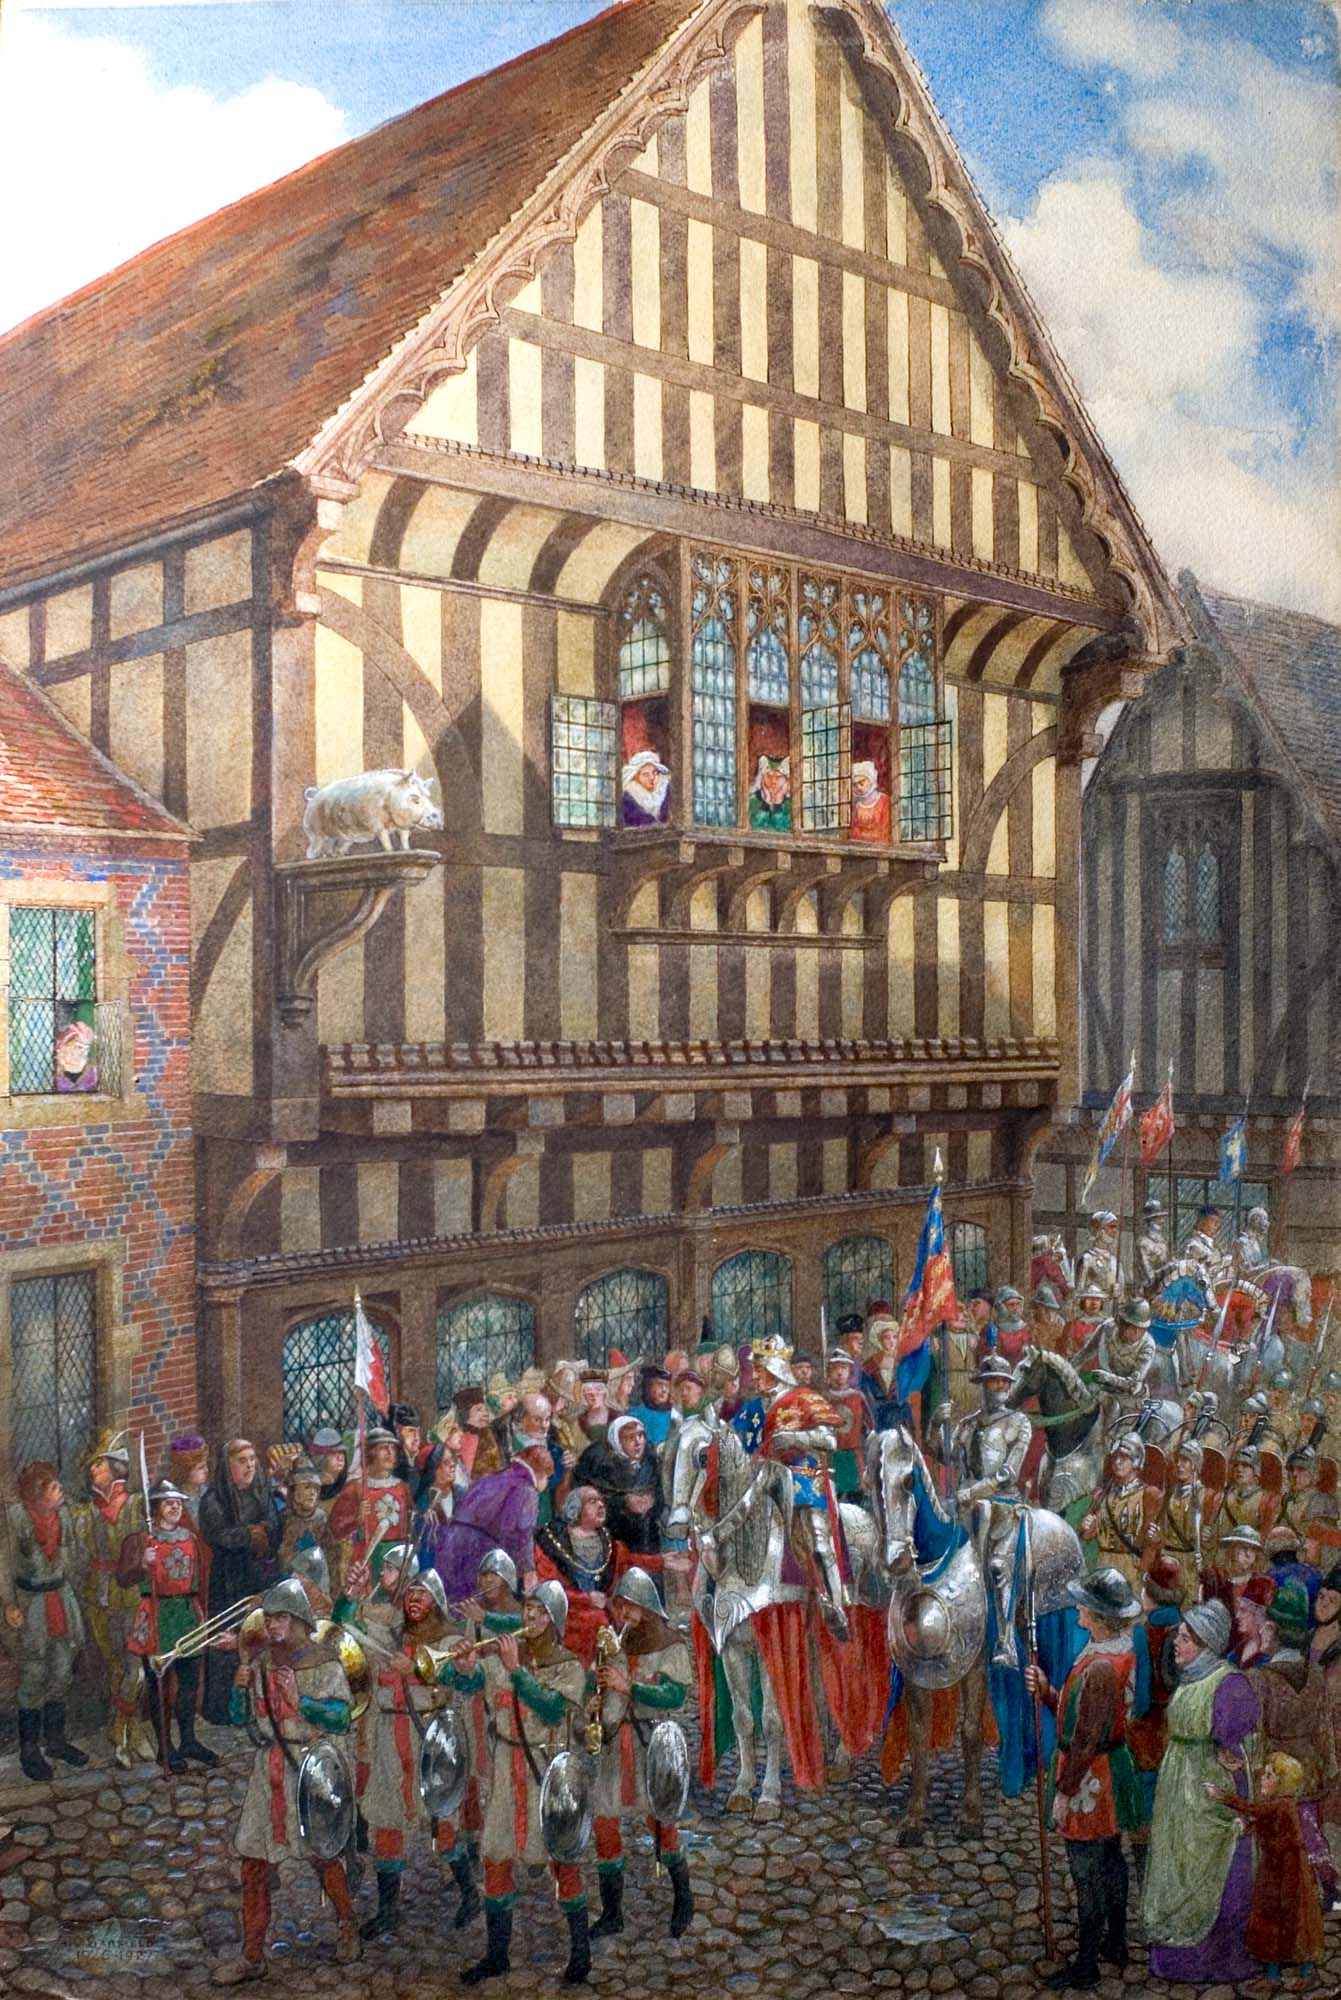 'King Richard III leaving the Blue Boar Inn' Thomas Charles Barfield, Watercolour, 1926 - From the collections of Leicester Museums